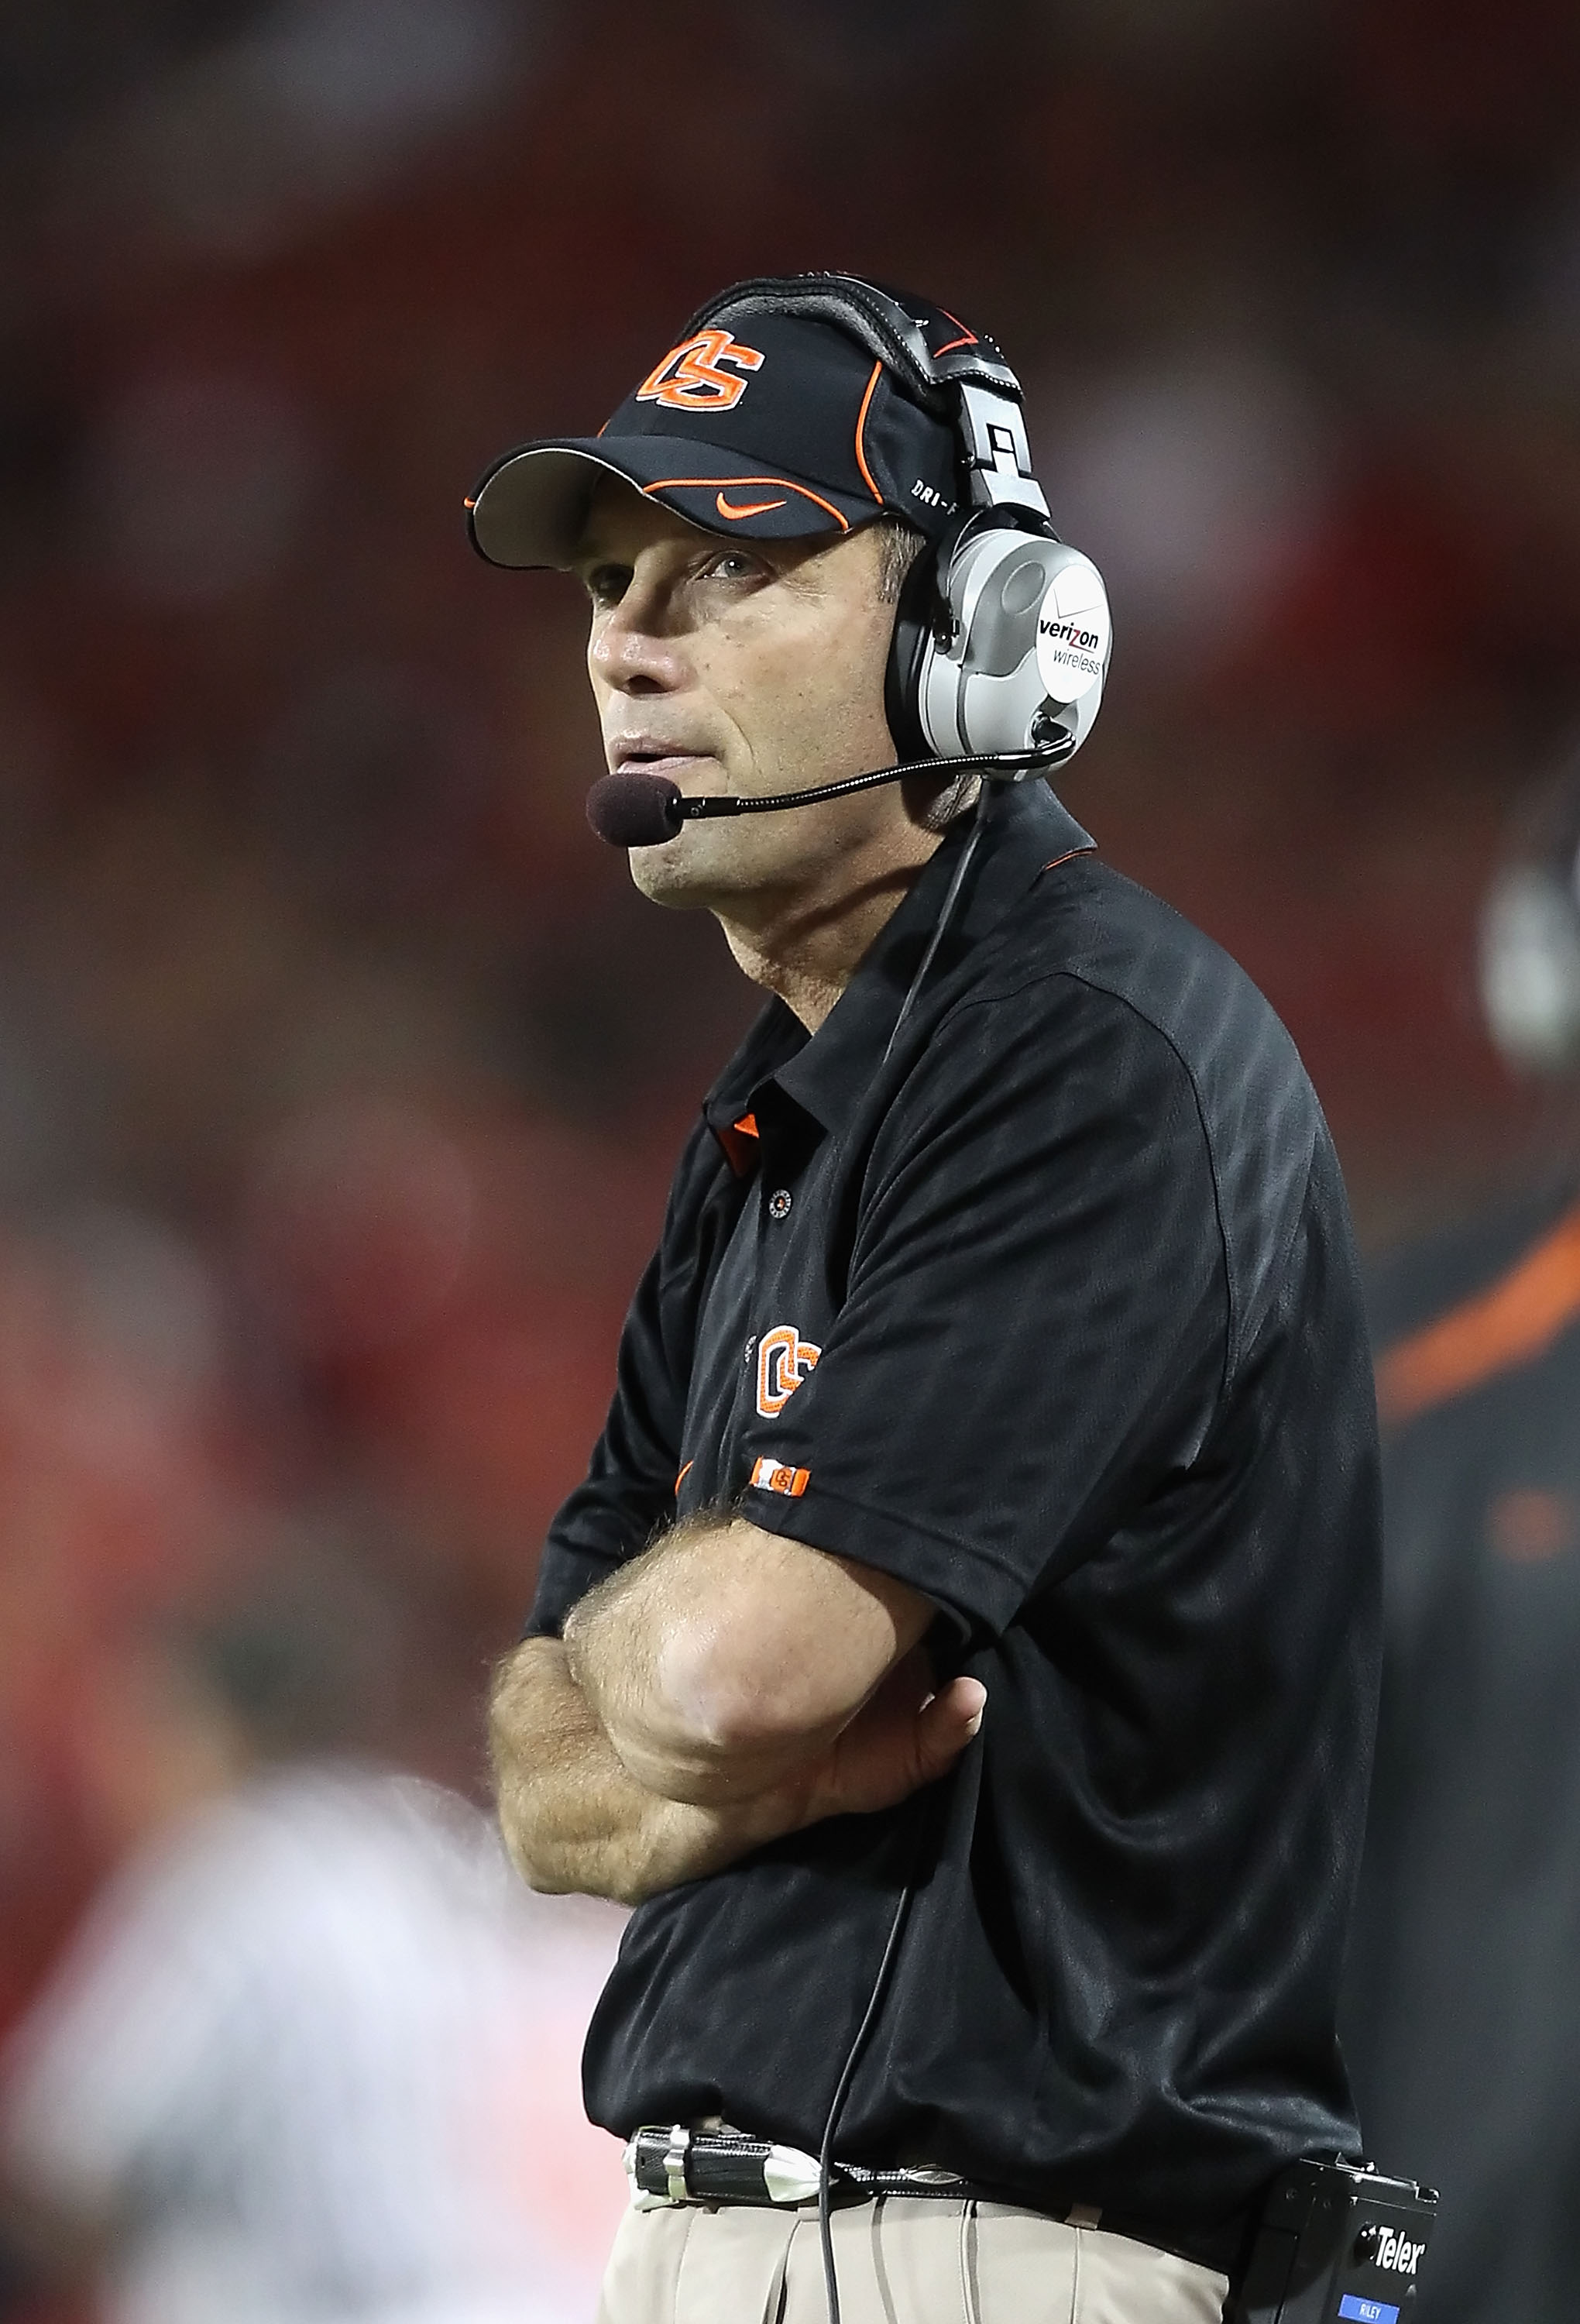 TUCSON, AZ - OCTOBER 09:  Head coach Mike Riley of the Oregon State Beavers during the college football game against the Arizona Wildcats at Arizona Stadium on October 9, 2010 in Tucson, Arizona.   The Beavers defeated the Wildcats 29-27.  (Photo by Chris